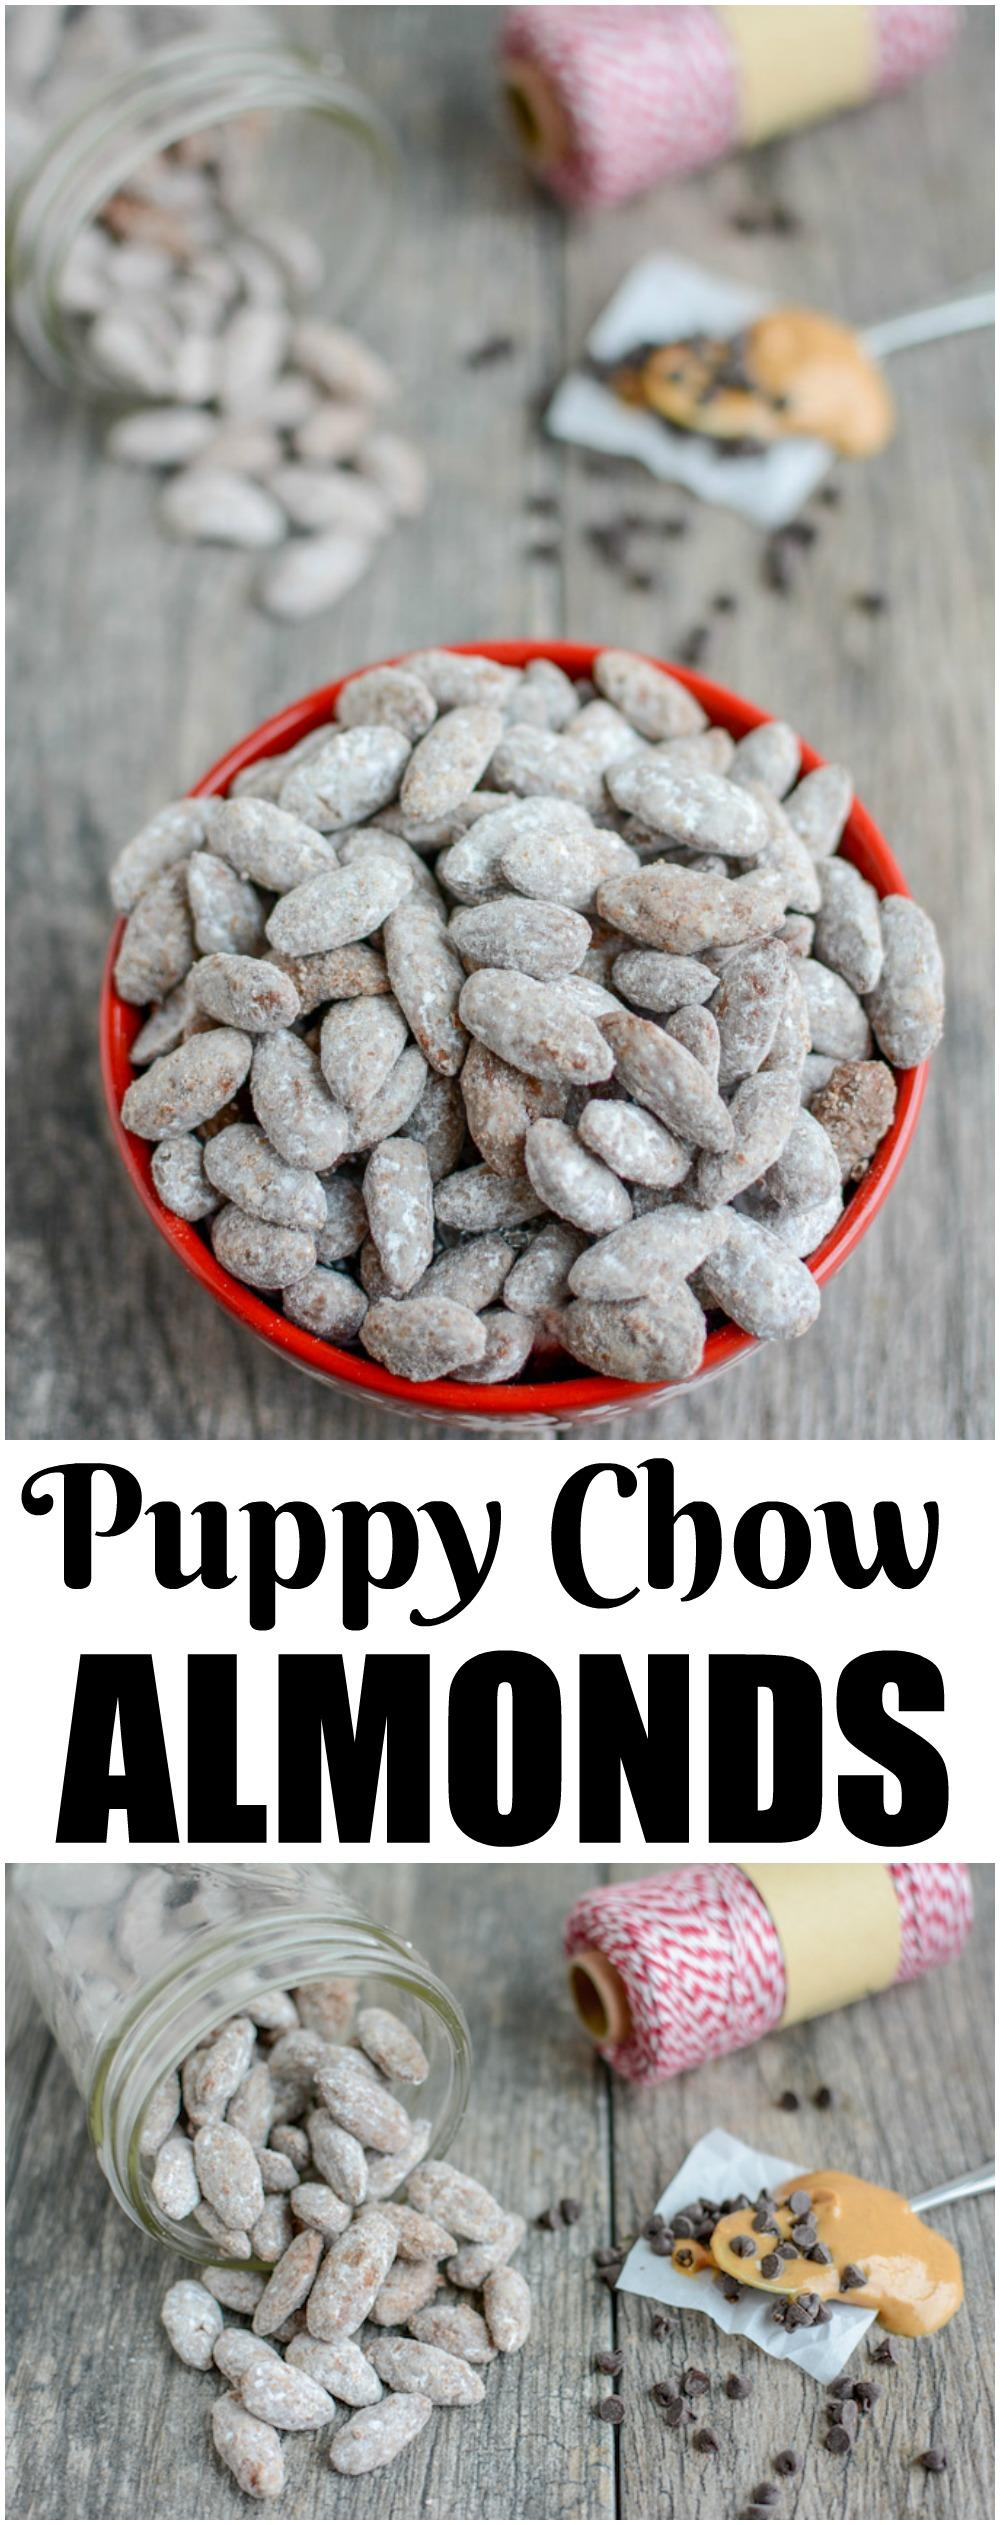 These Puppy Chow Almonds are a fun twist on a classic treat. The nuts add an extra boost of protein and healthy fats, making it perfect for a special snack or dessert!